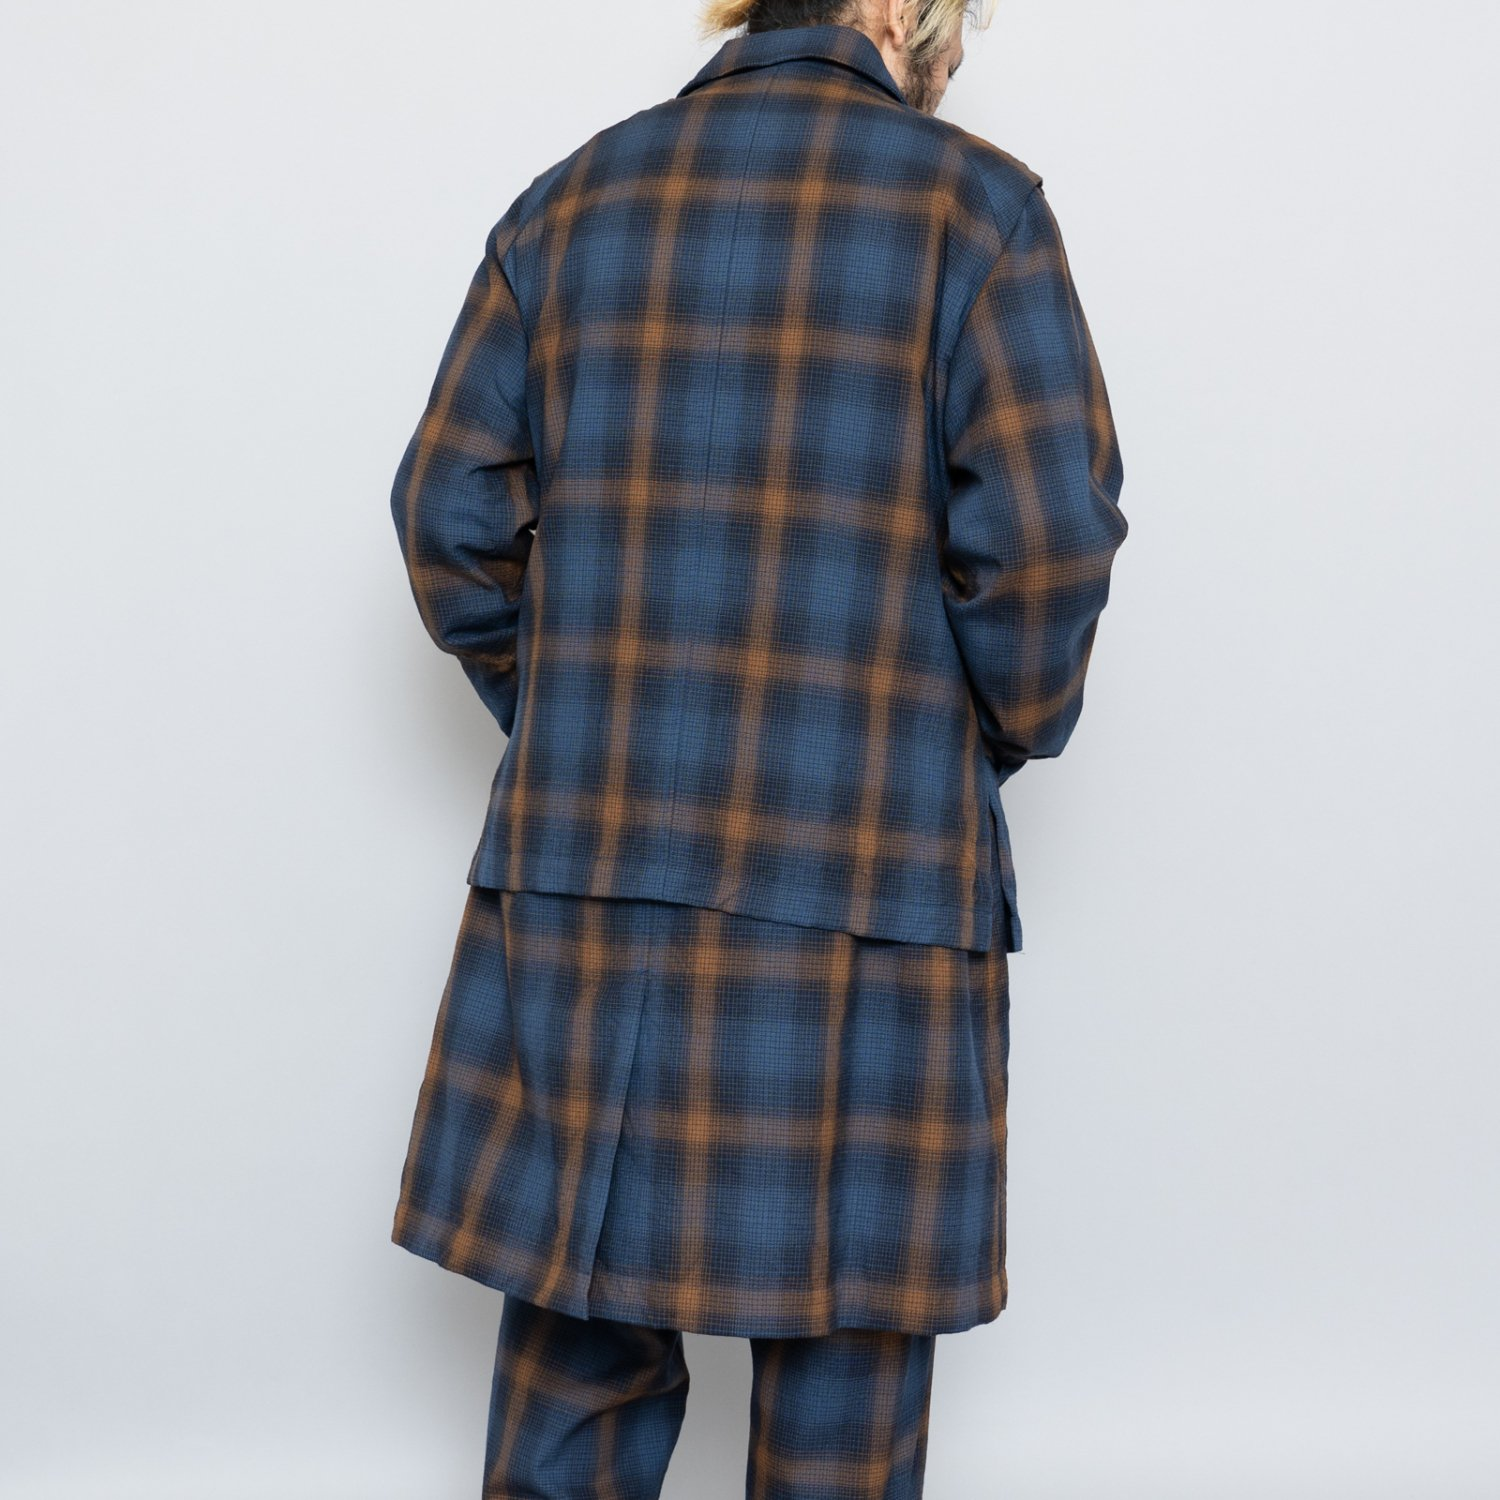 ts(s) * Ombre Plaid Wool Cloth Bal Coolar Fly Front Vest * Navy